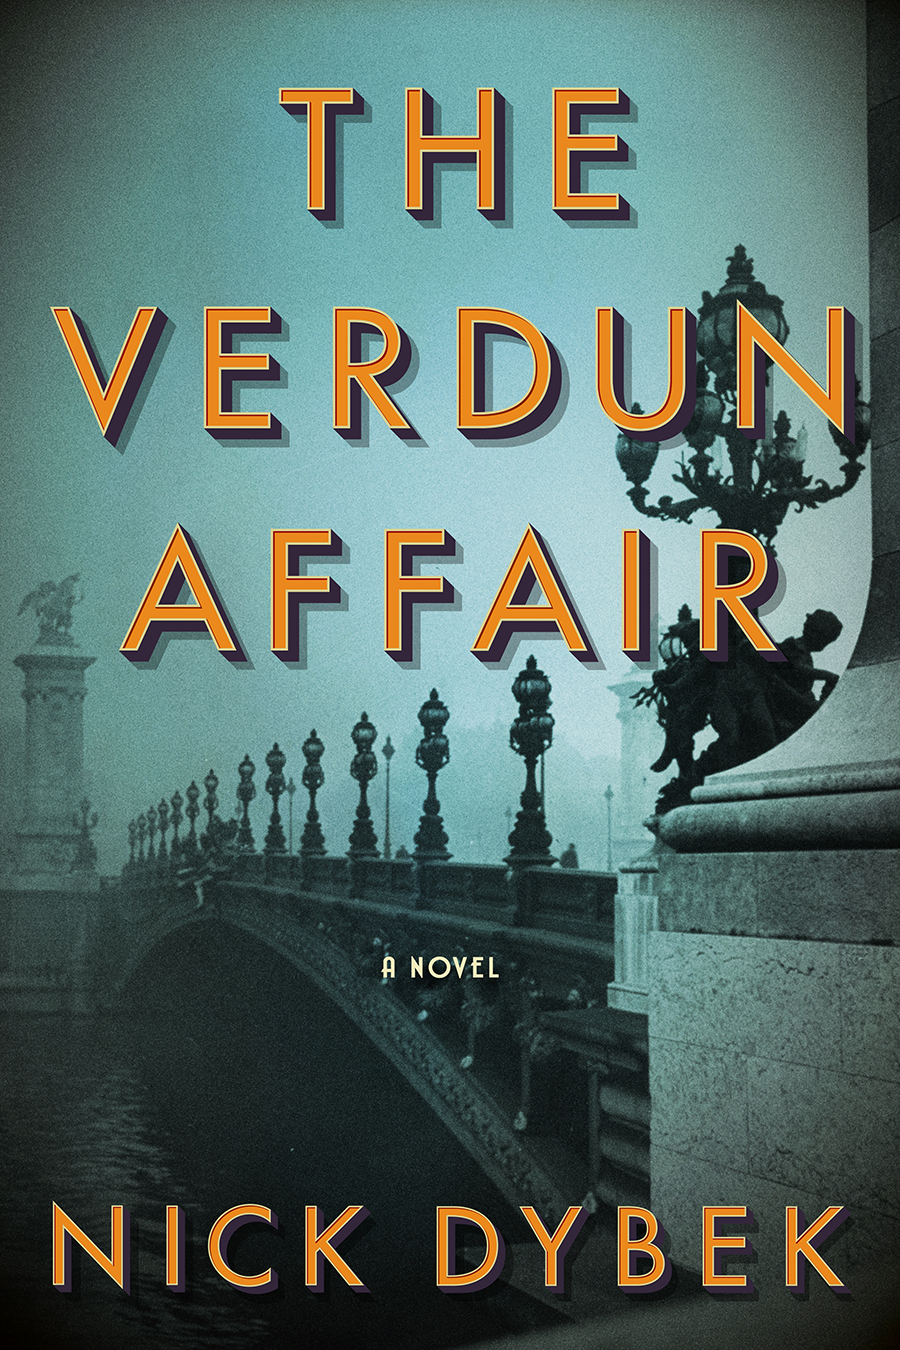 The Verdun Affair  by Nick Dybek  Scribner --- June 12, 2018